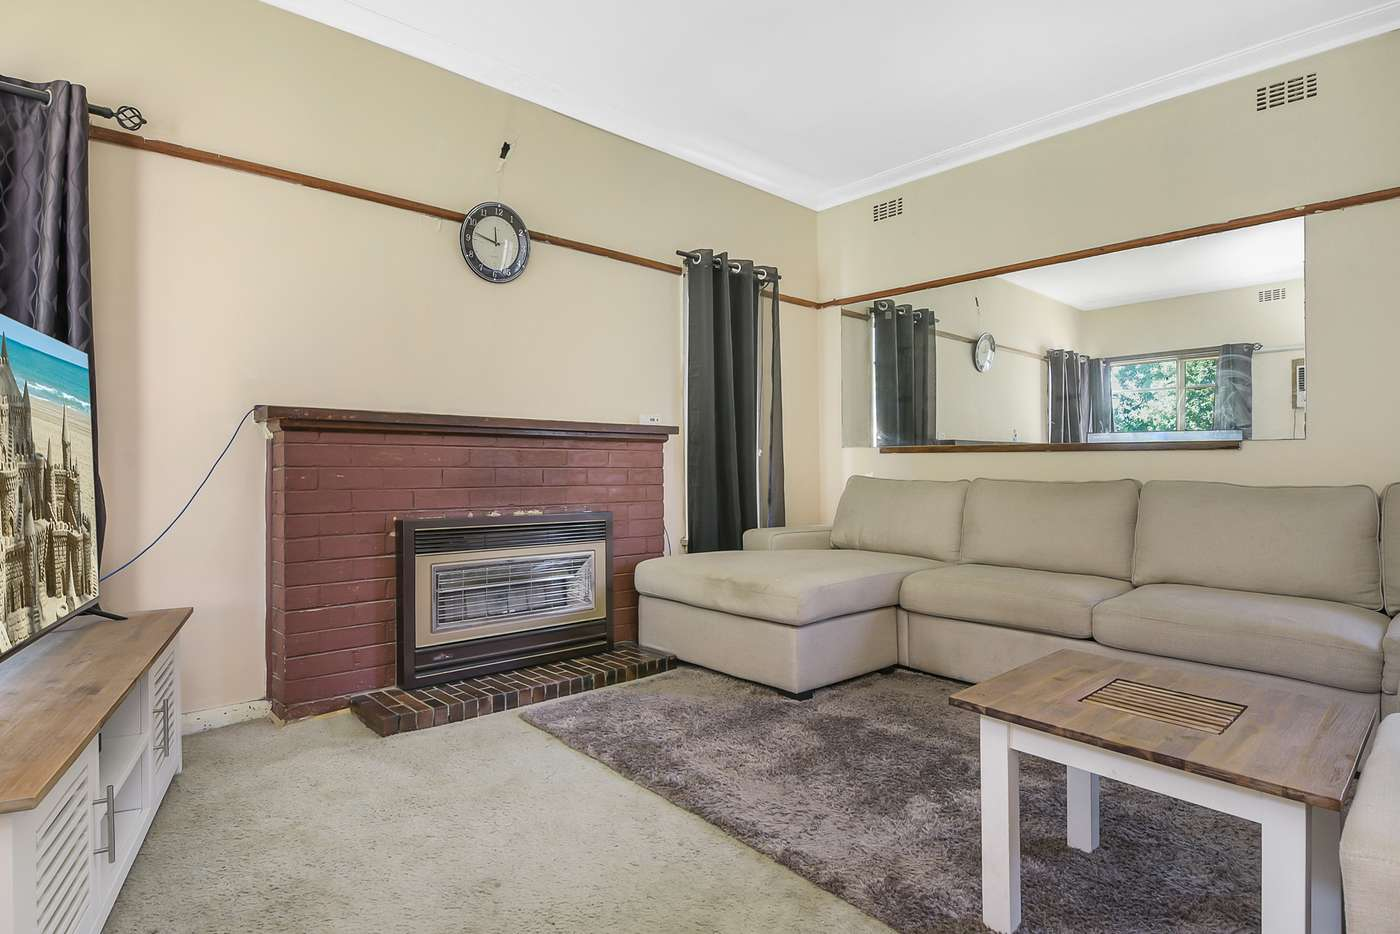 Fifth view of Homely house listing, 39 Roberts Avenue, Mulgrave VIC 3170